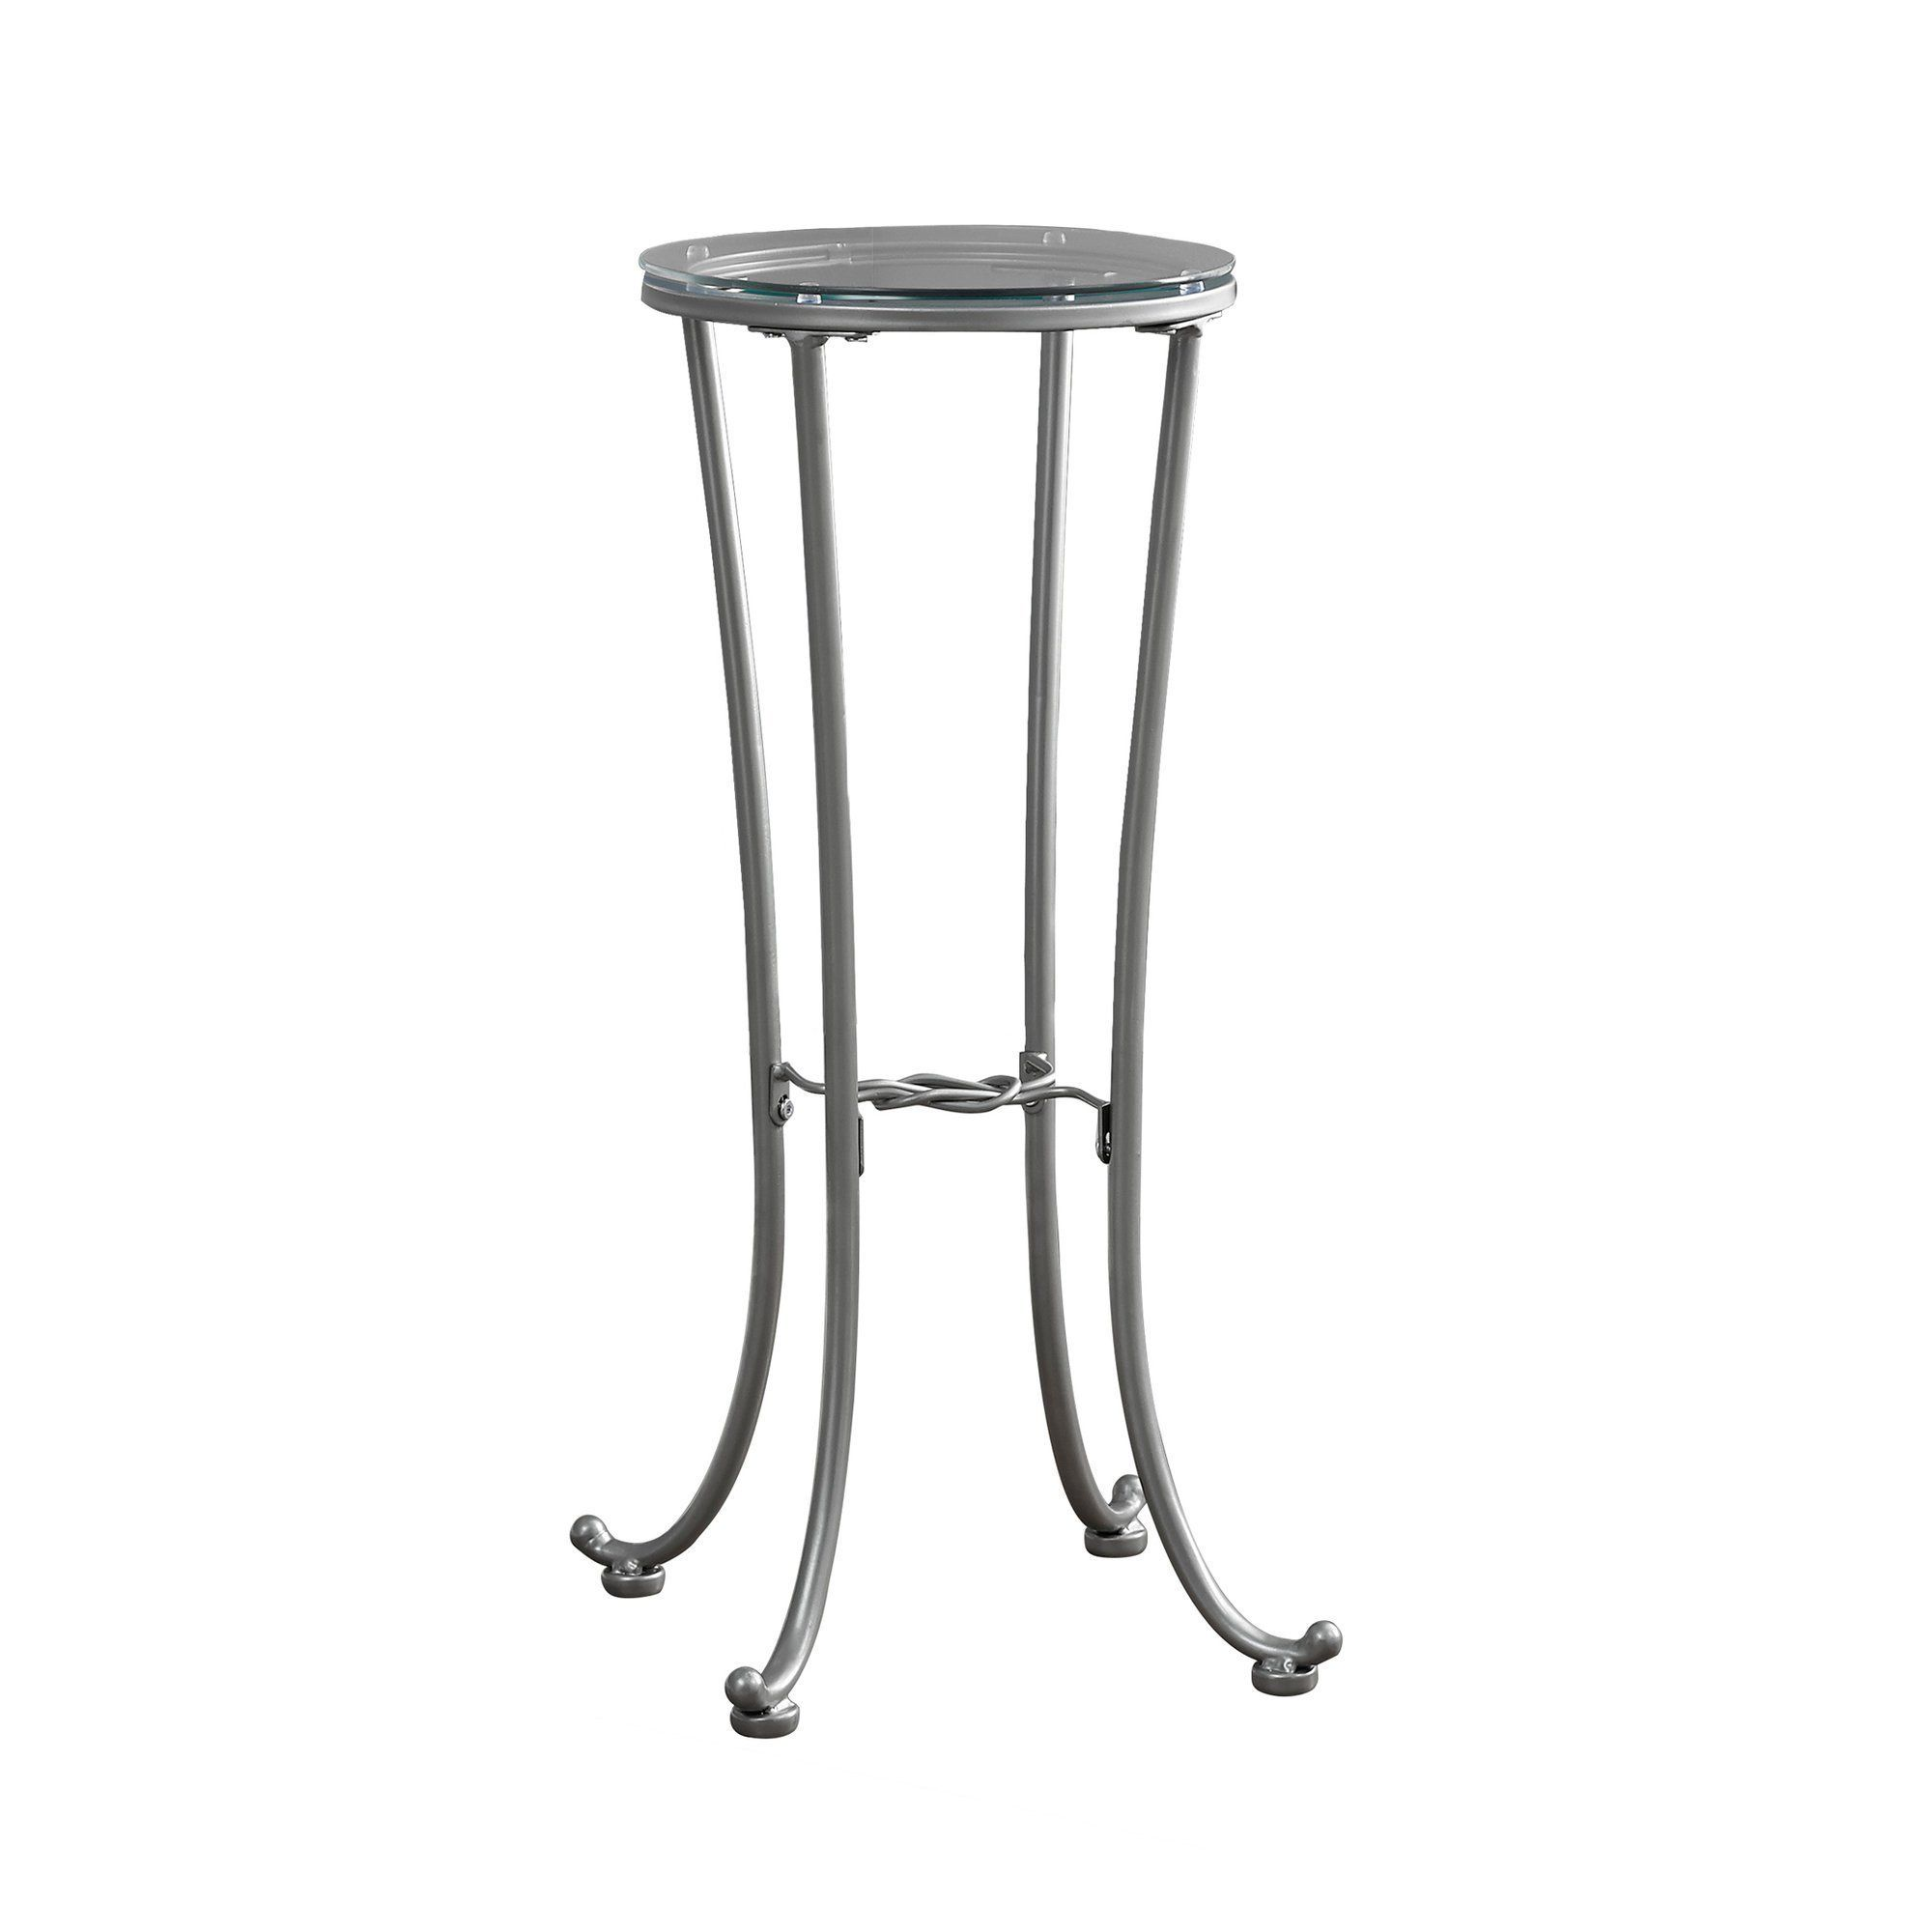 Accent Table Silver Metal With Tempered Glass I 3333 Metal Accent Table Metal Table